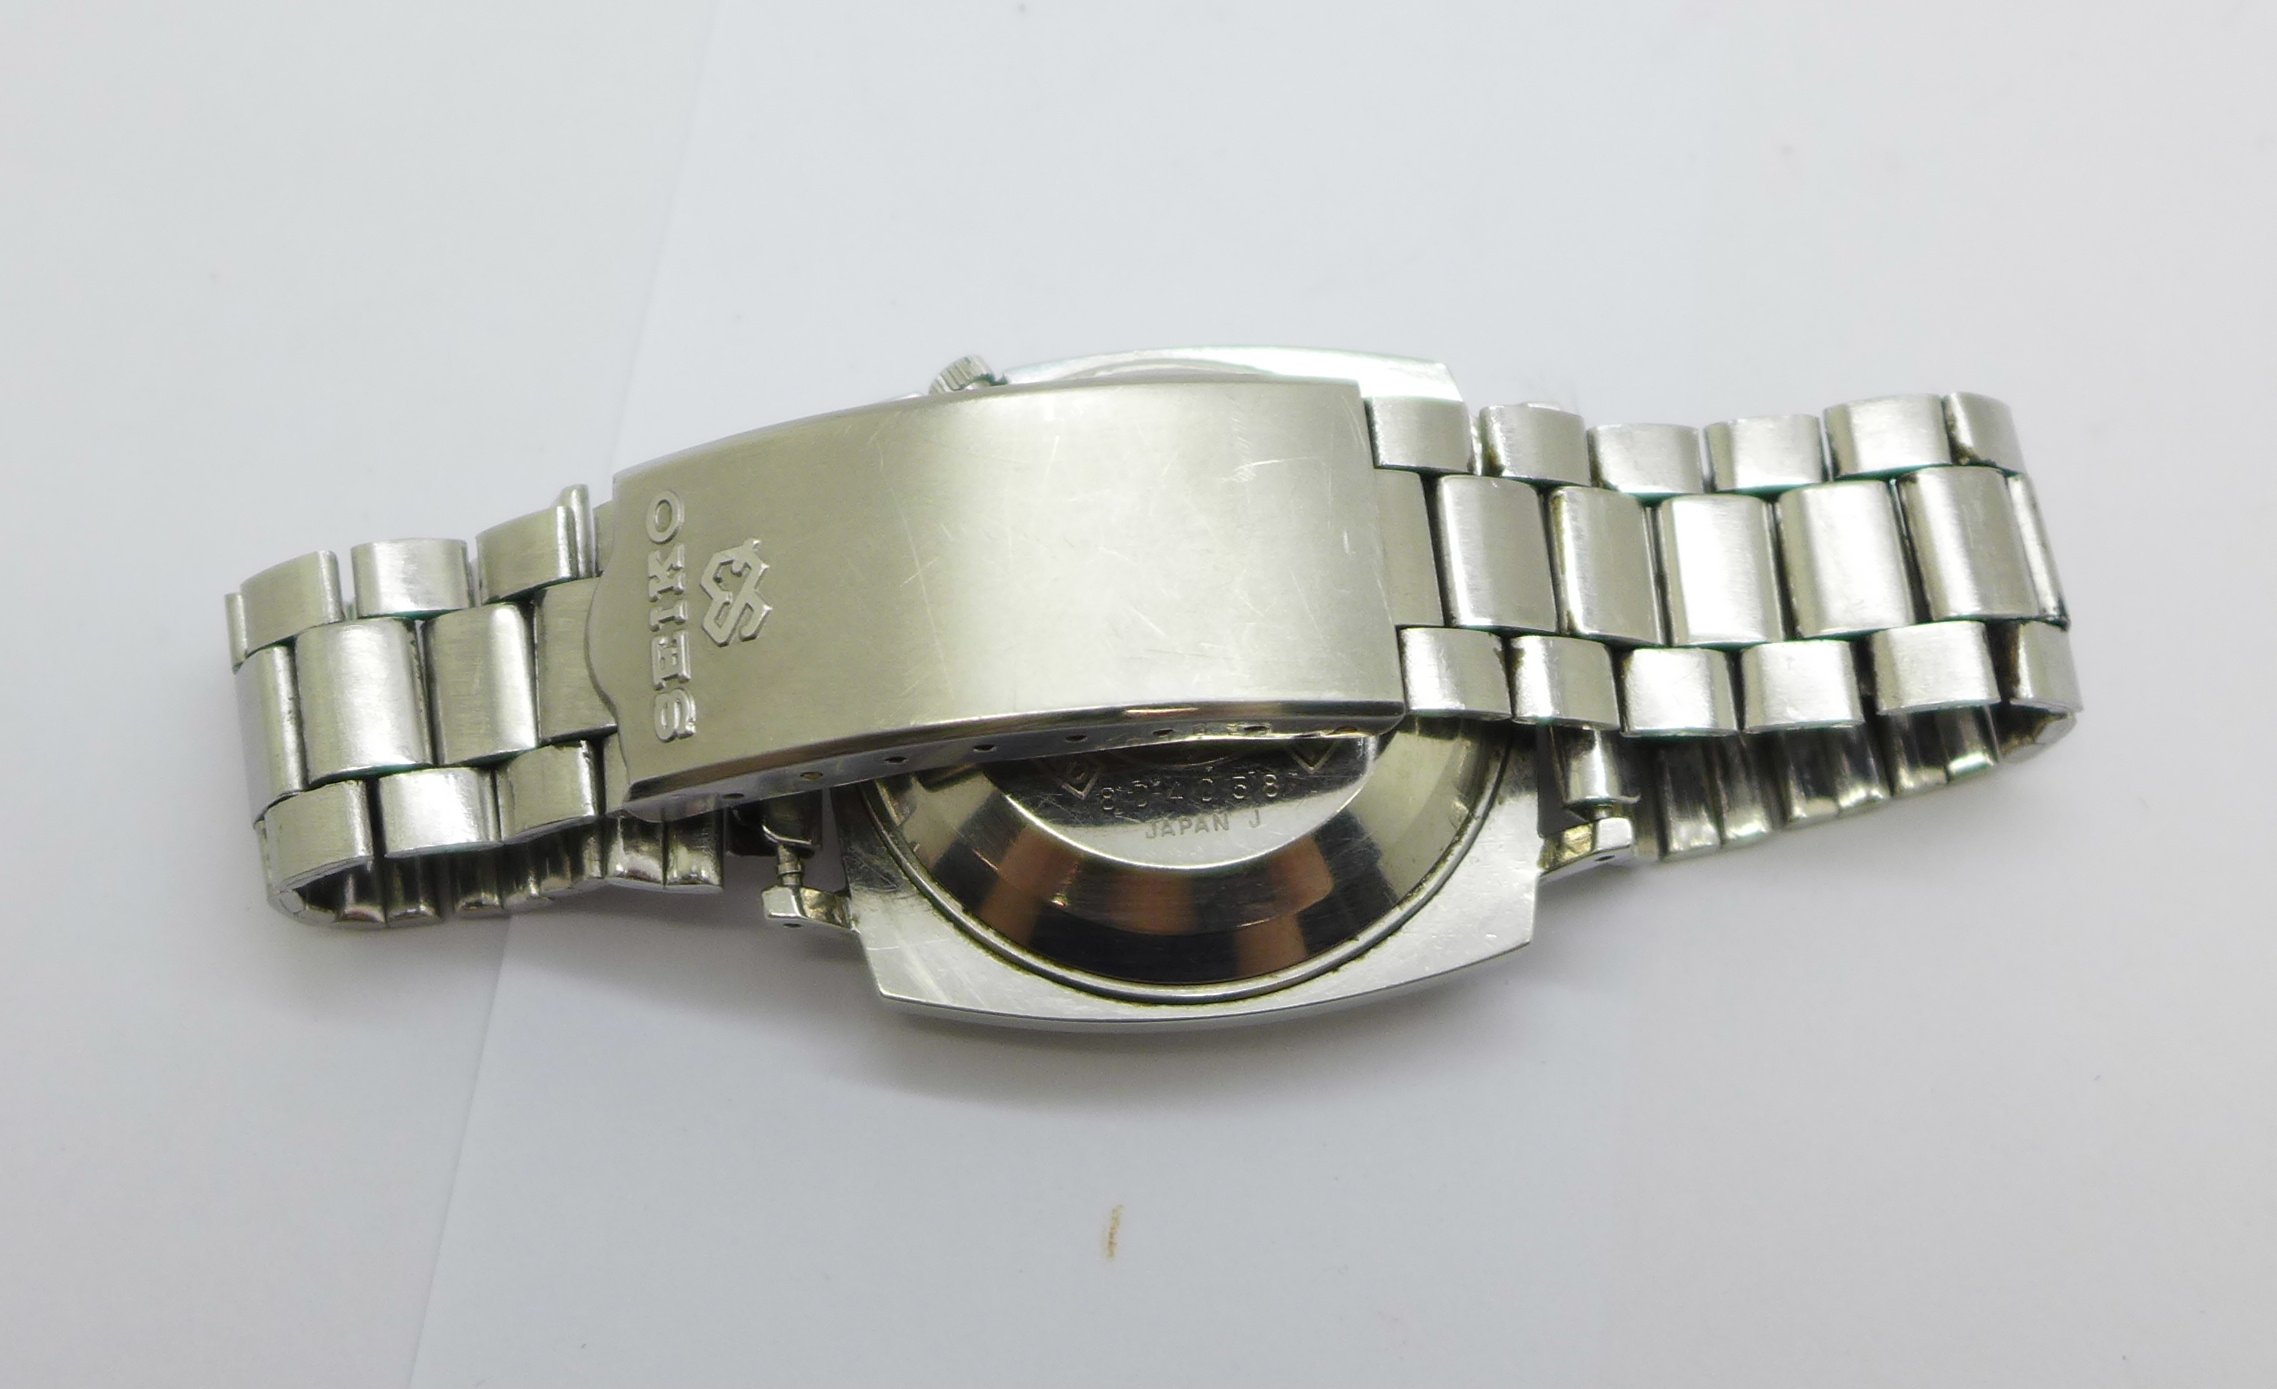 A Seiko DX Sea Lion automatic wristwatch, with day and date - Image 6 of 6